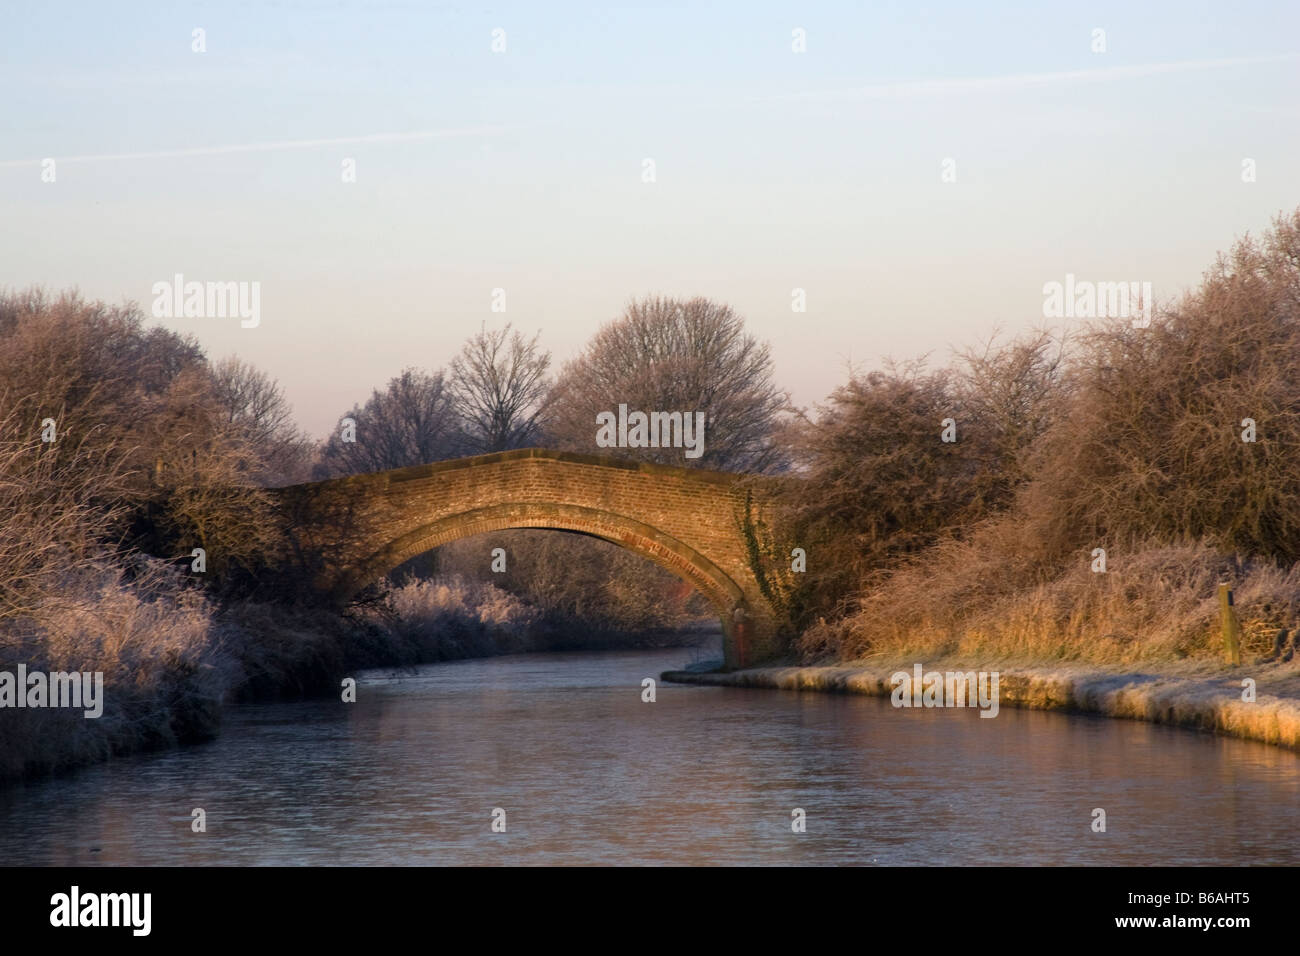 Canal and bridge in winter, Lymm, Warrington, Cheshire England - Stock Image